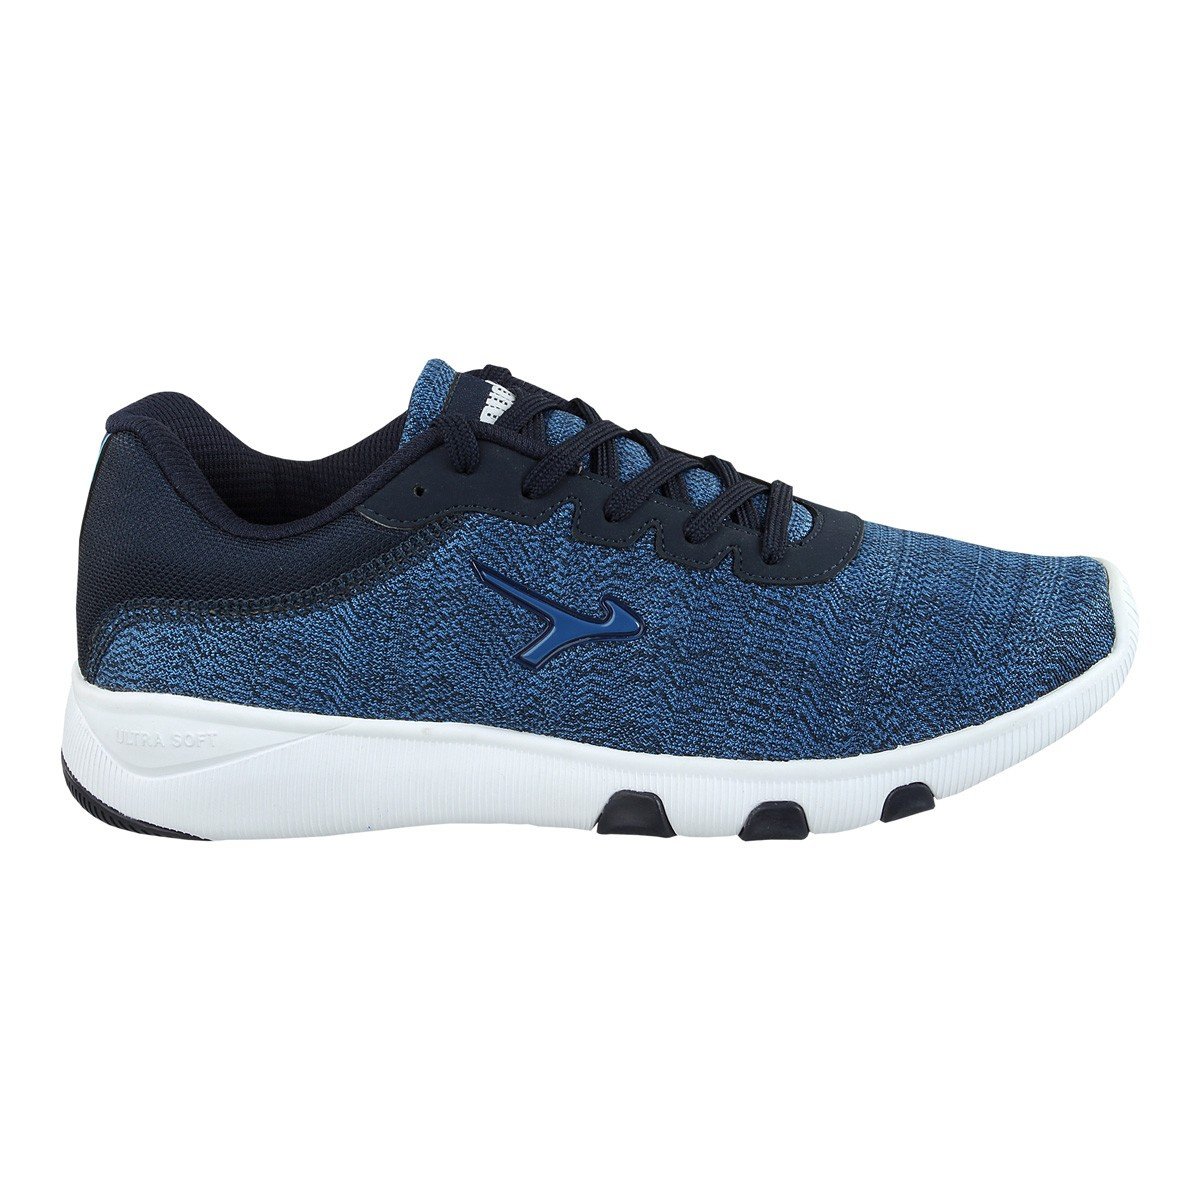 Touch-953-S.Blue/Navy